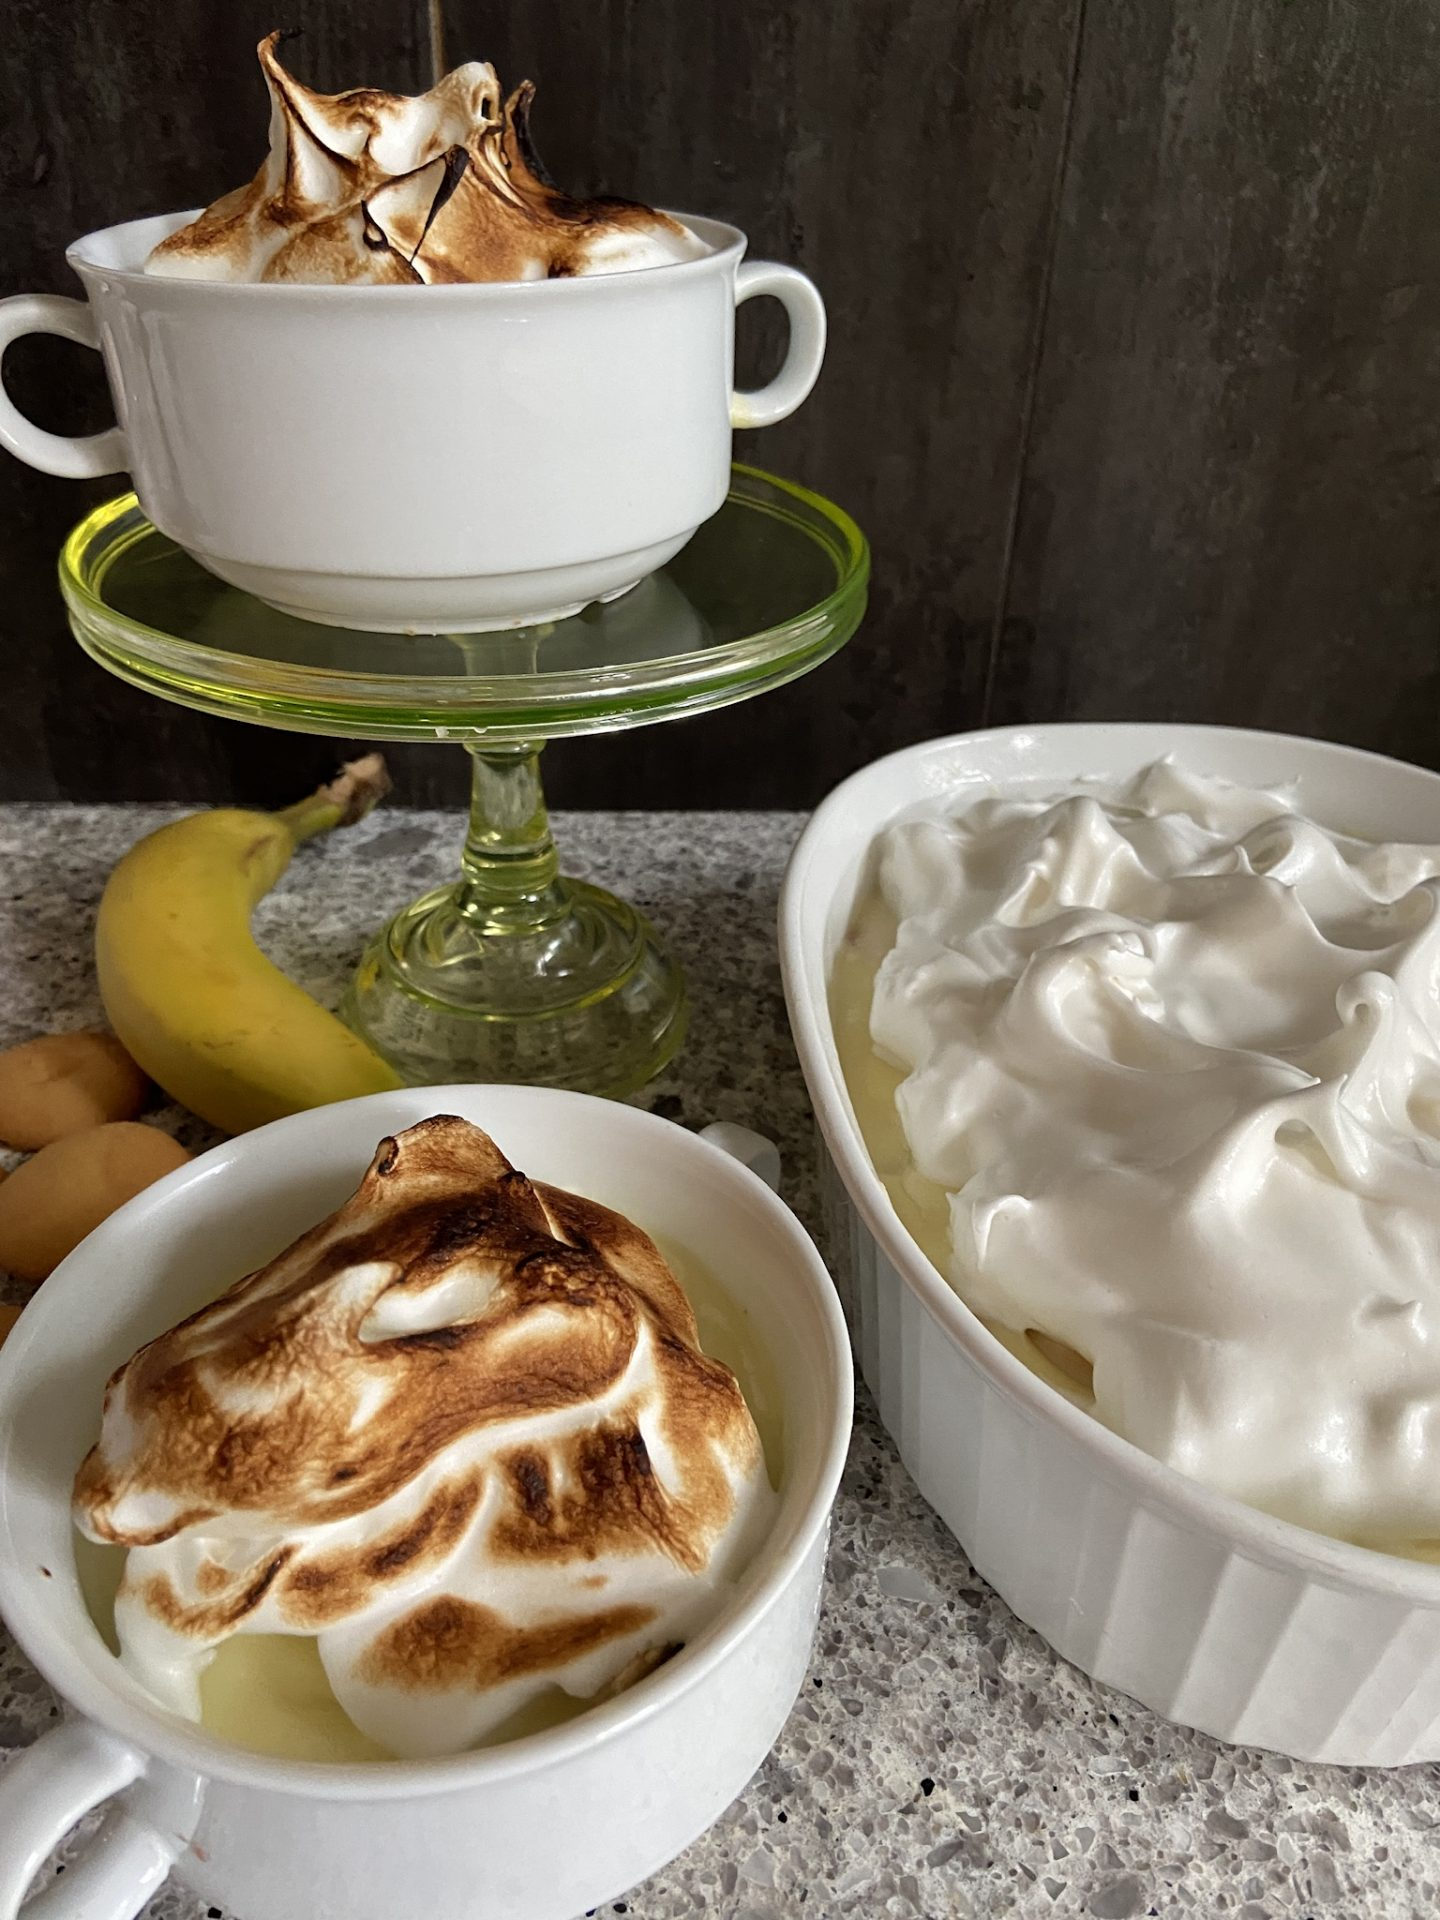 The Quintessential Southern Pudding to Celebrate Pudding Month